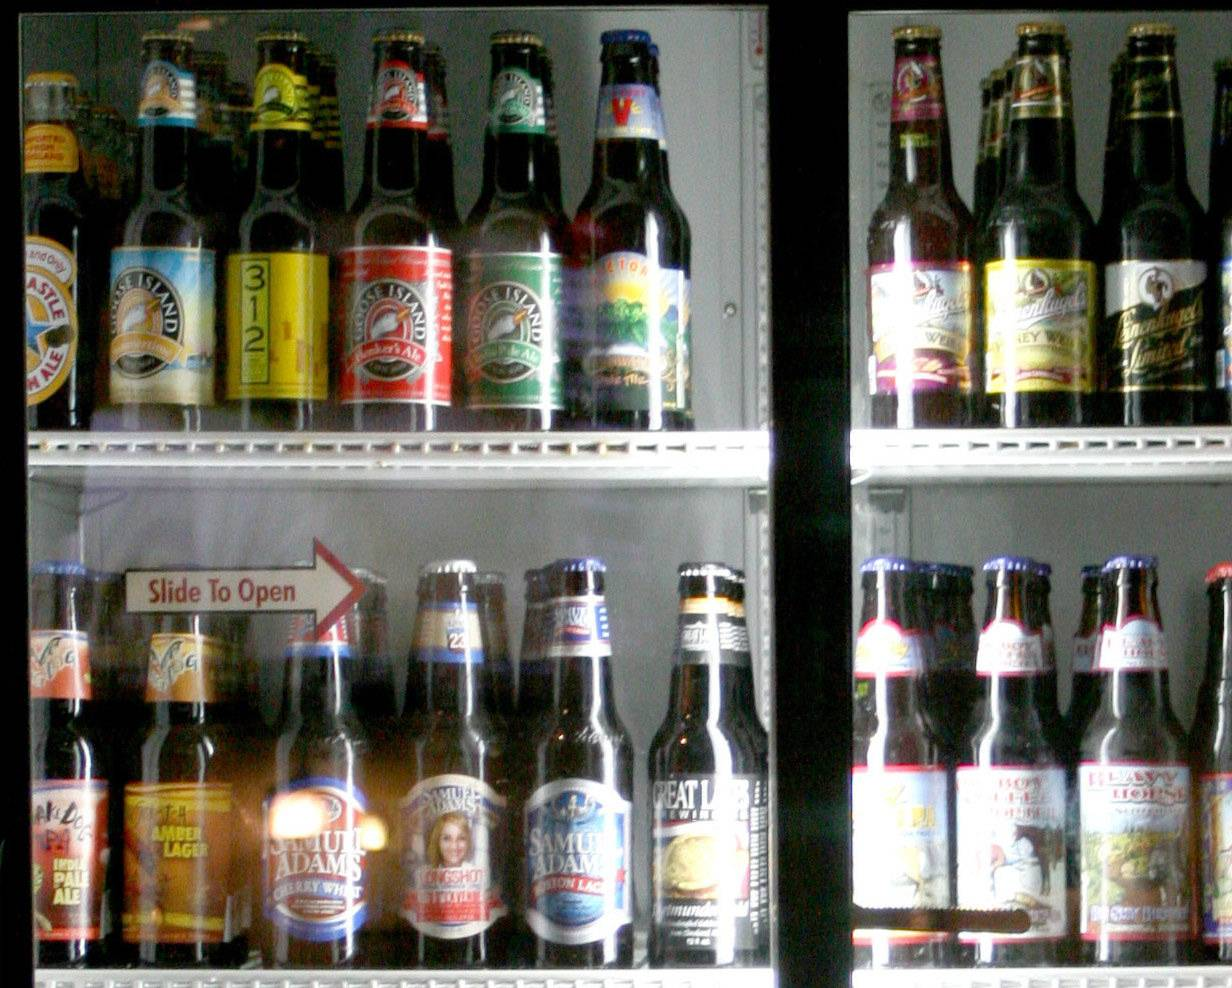 A new Chicago ordinance permits beer, wine and hard liquor sales starting at 8 a.m. on Sundays at large grocery stores.